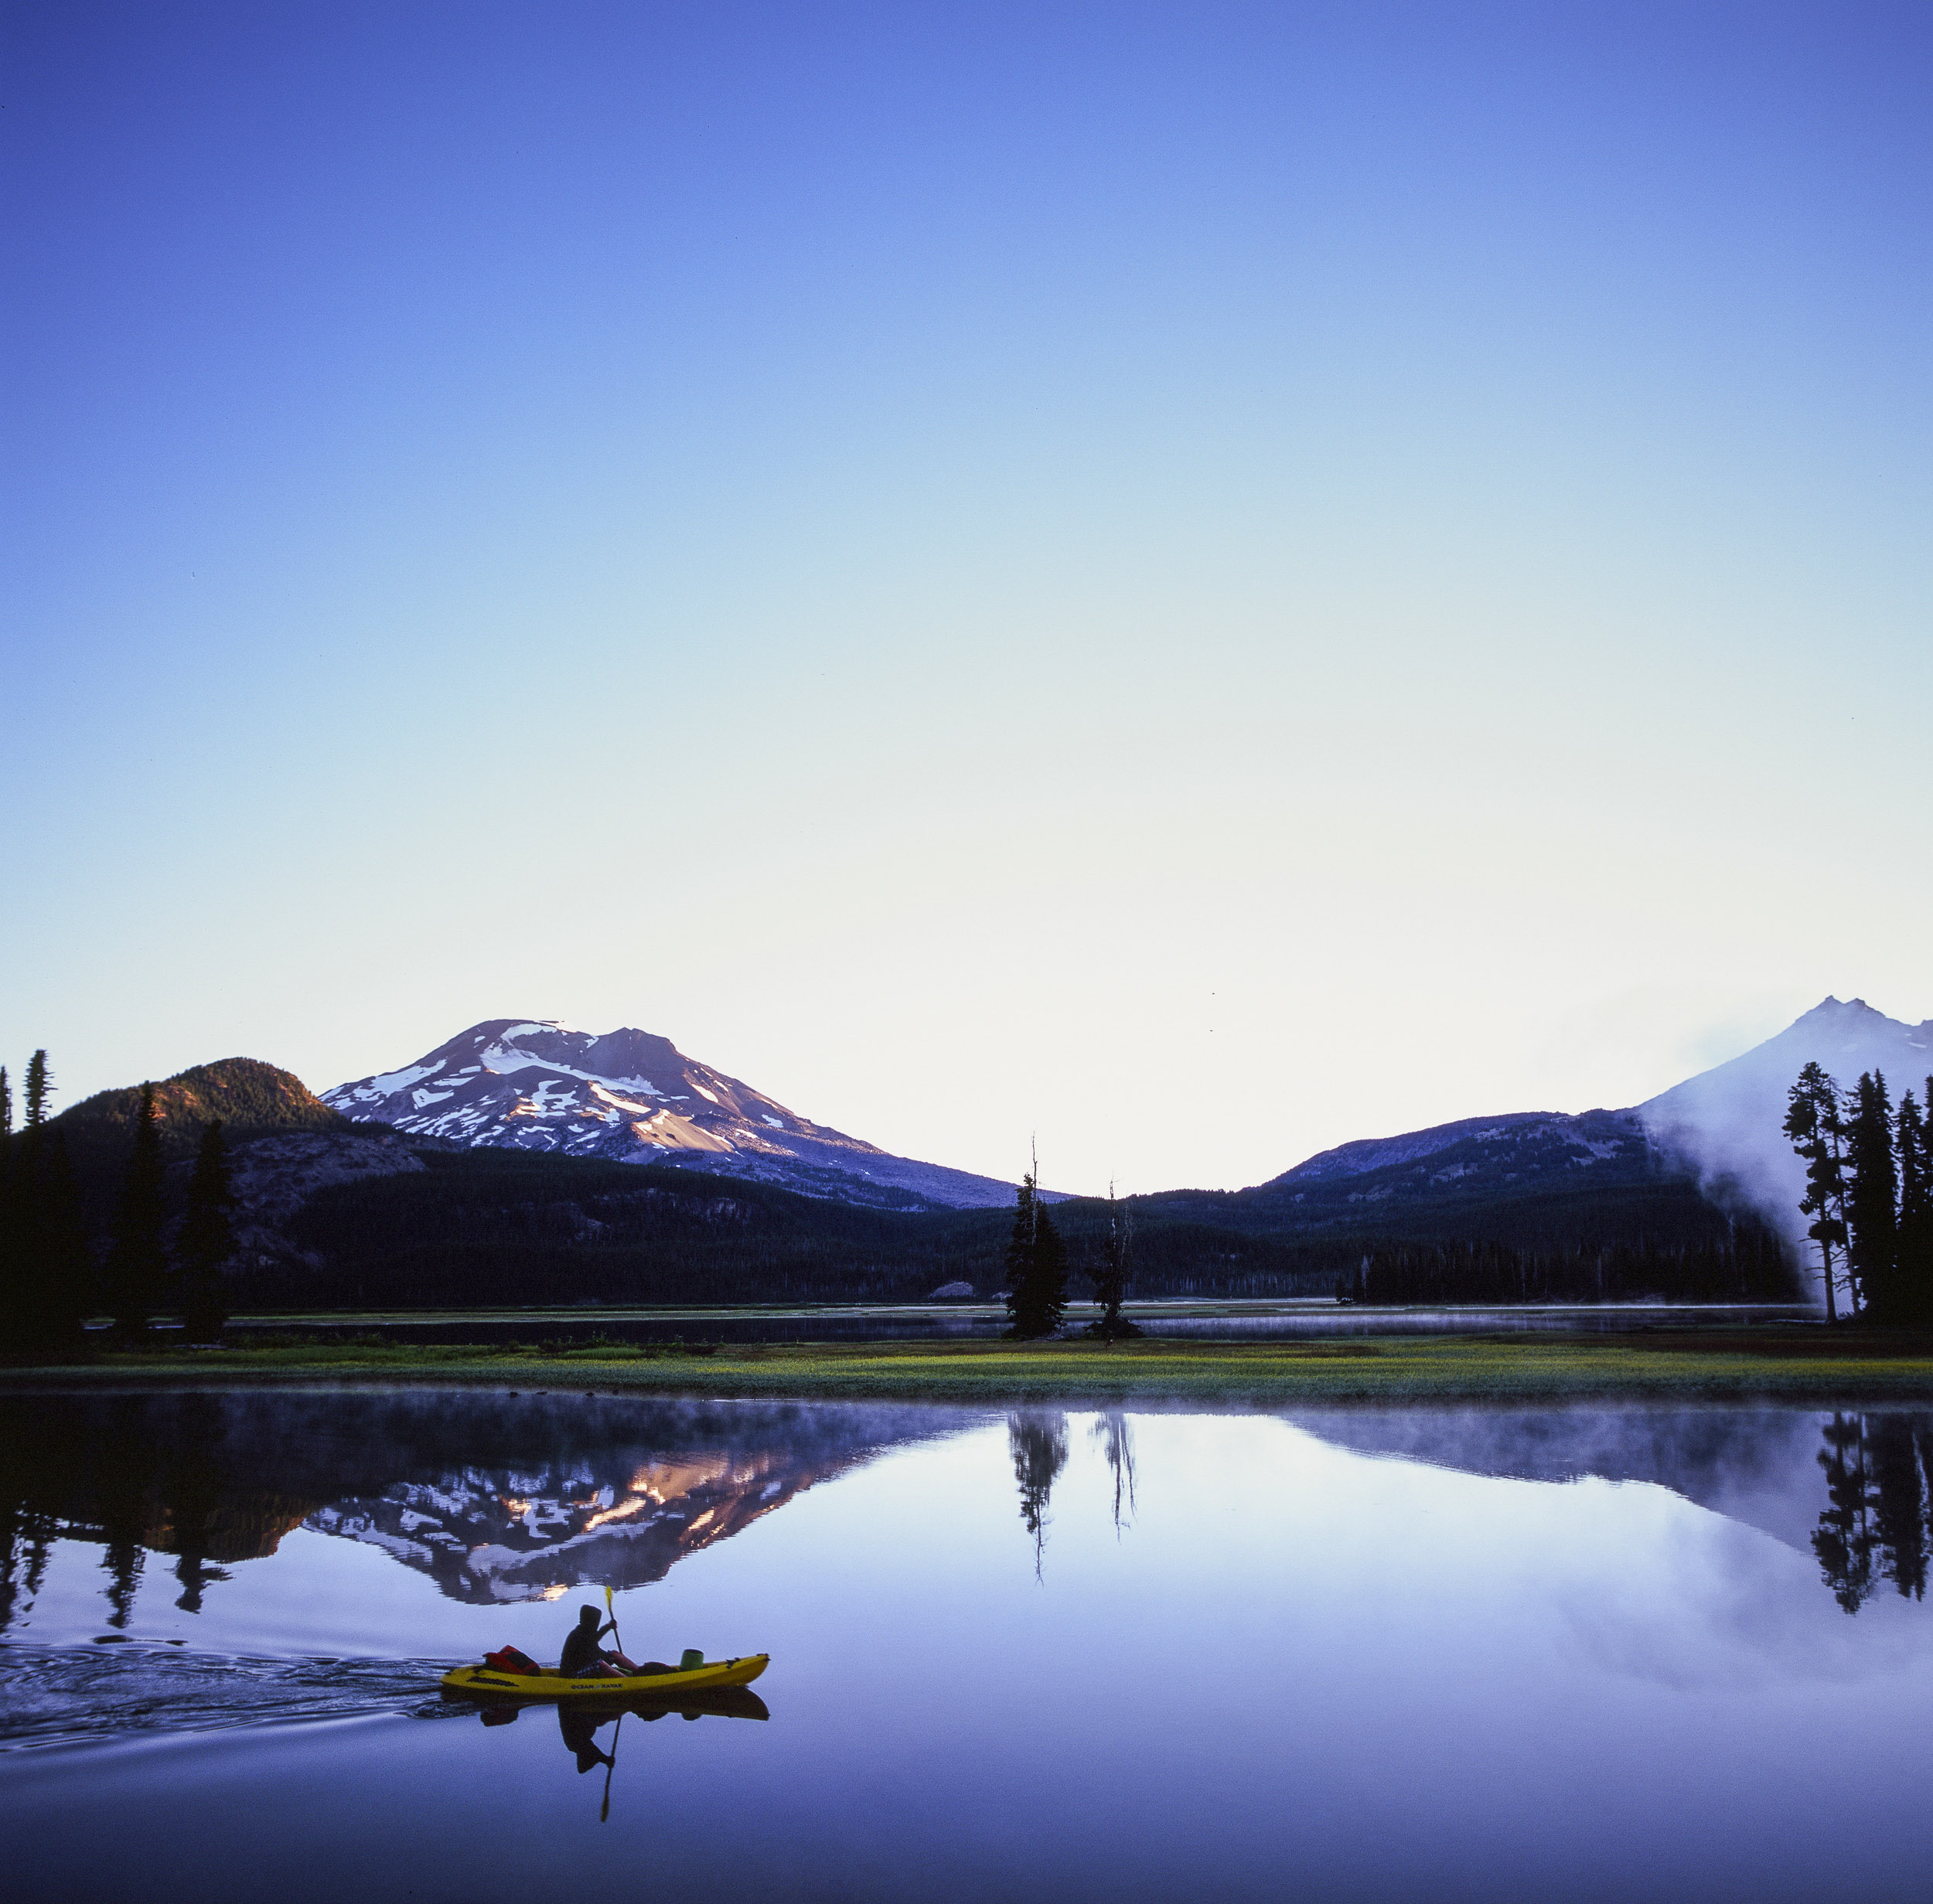 Kayaking on Sparks Lake